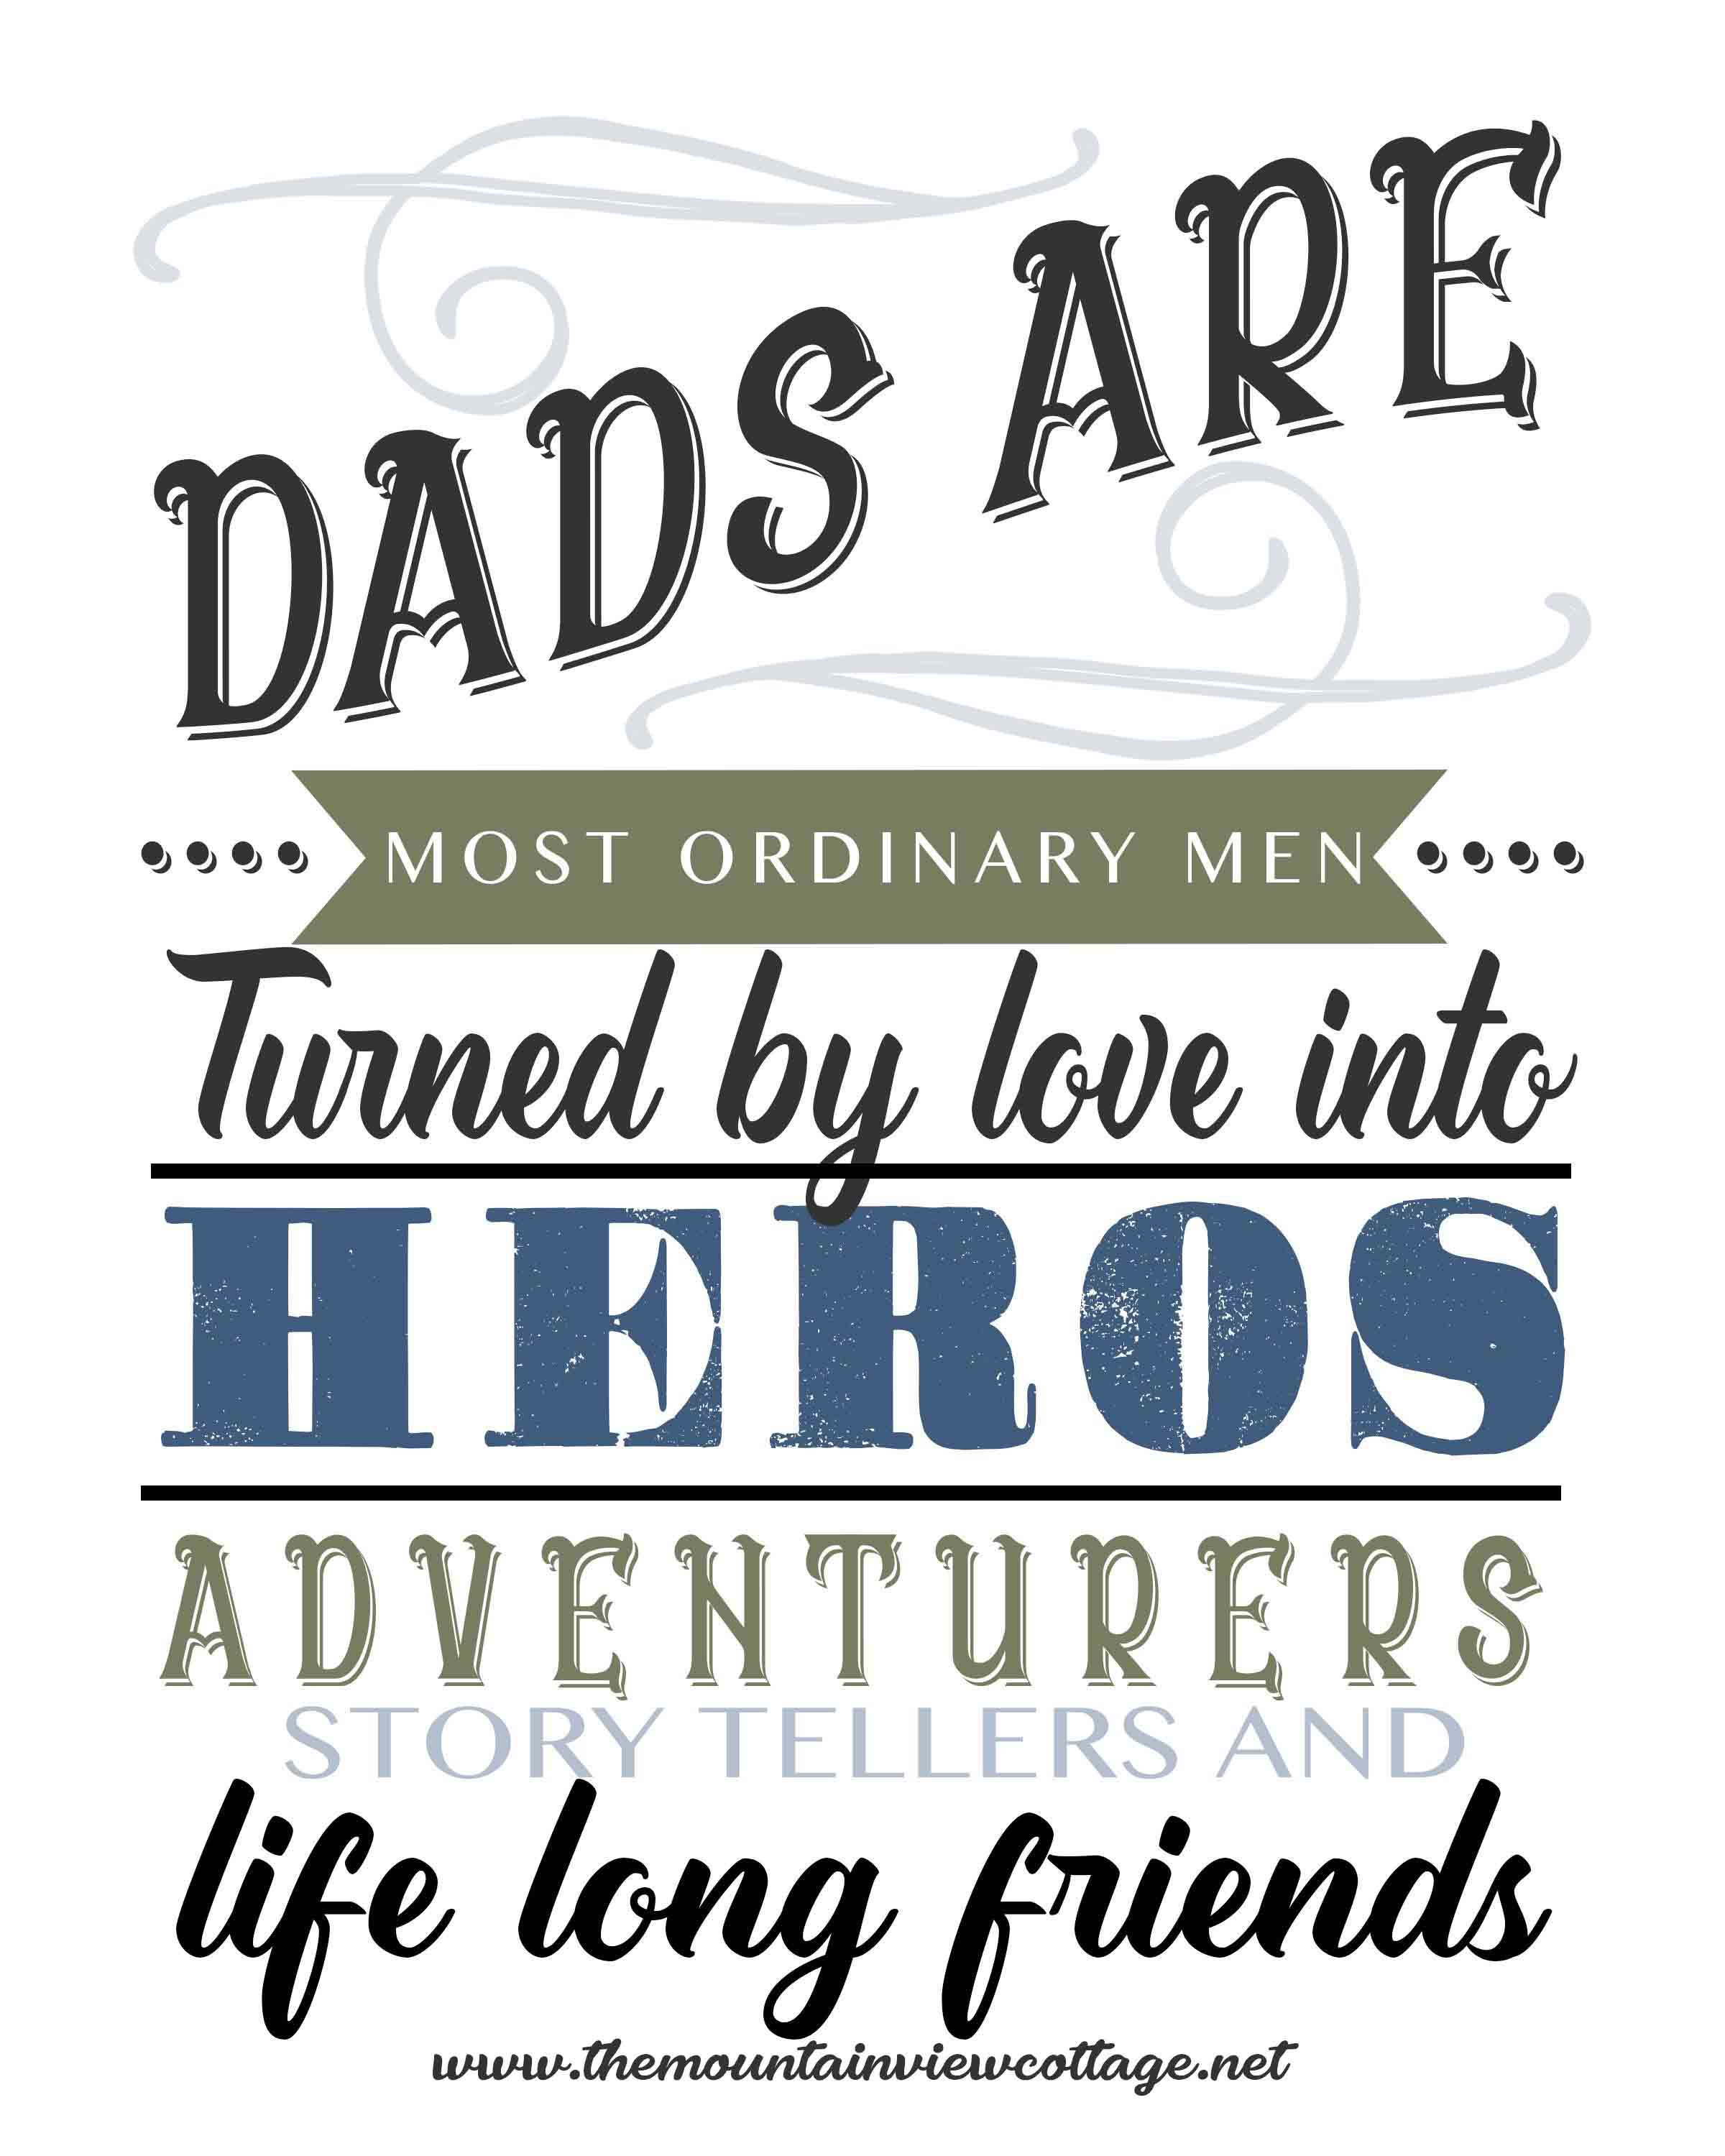 Dad quotes-INspirational dad quotes-dads are most ordinary men turned by love into heroes adventurers story tellers and life long friends